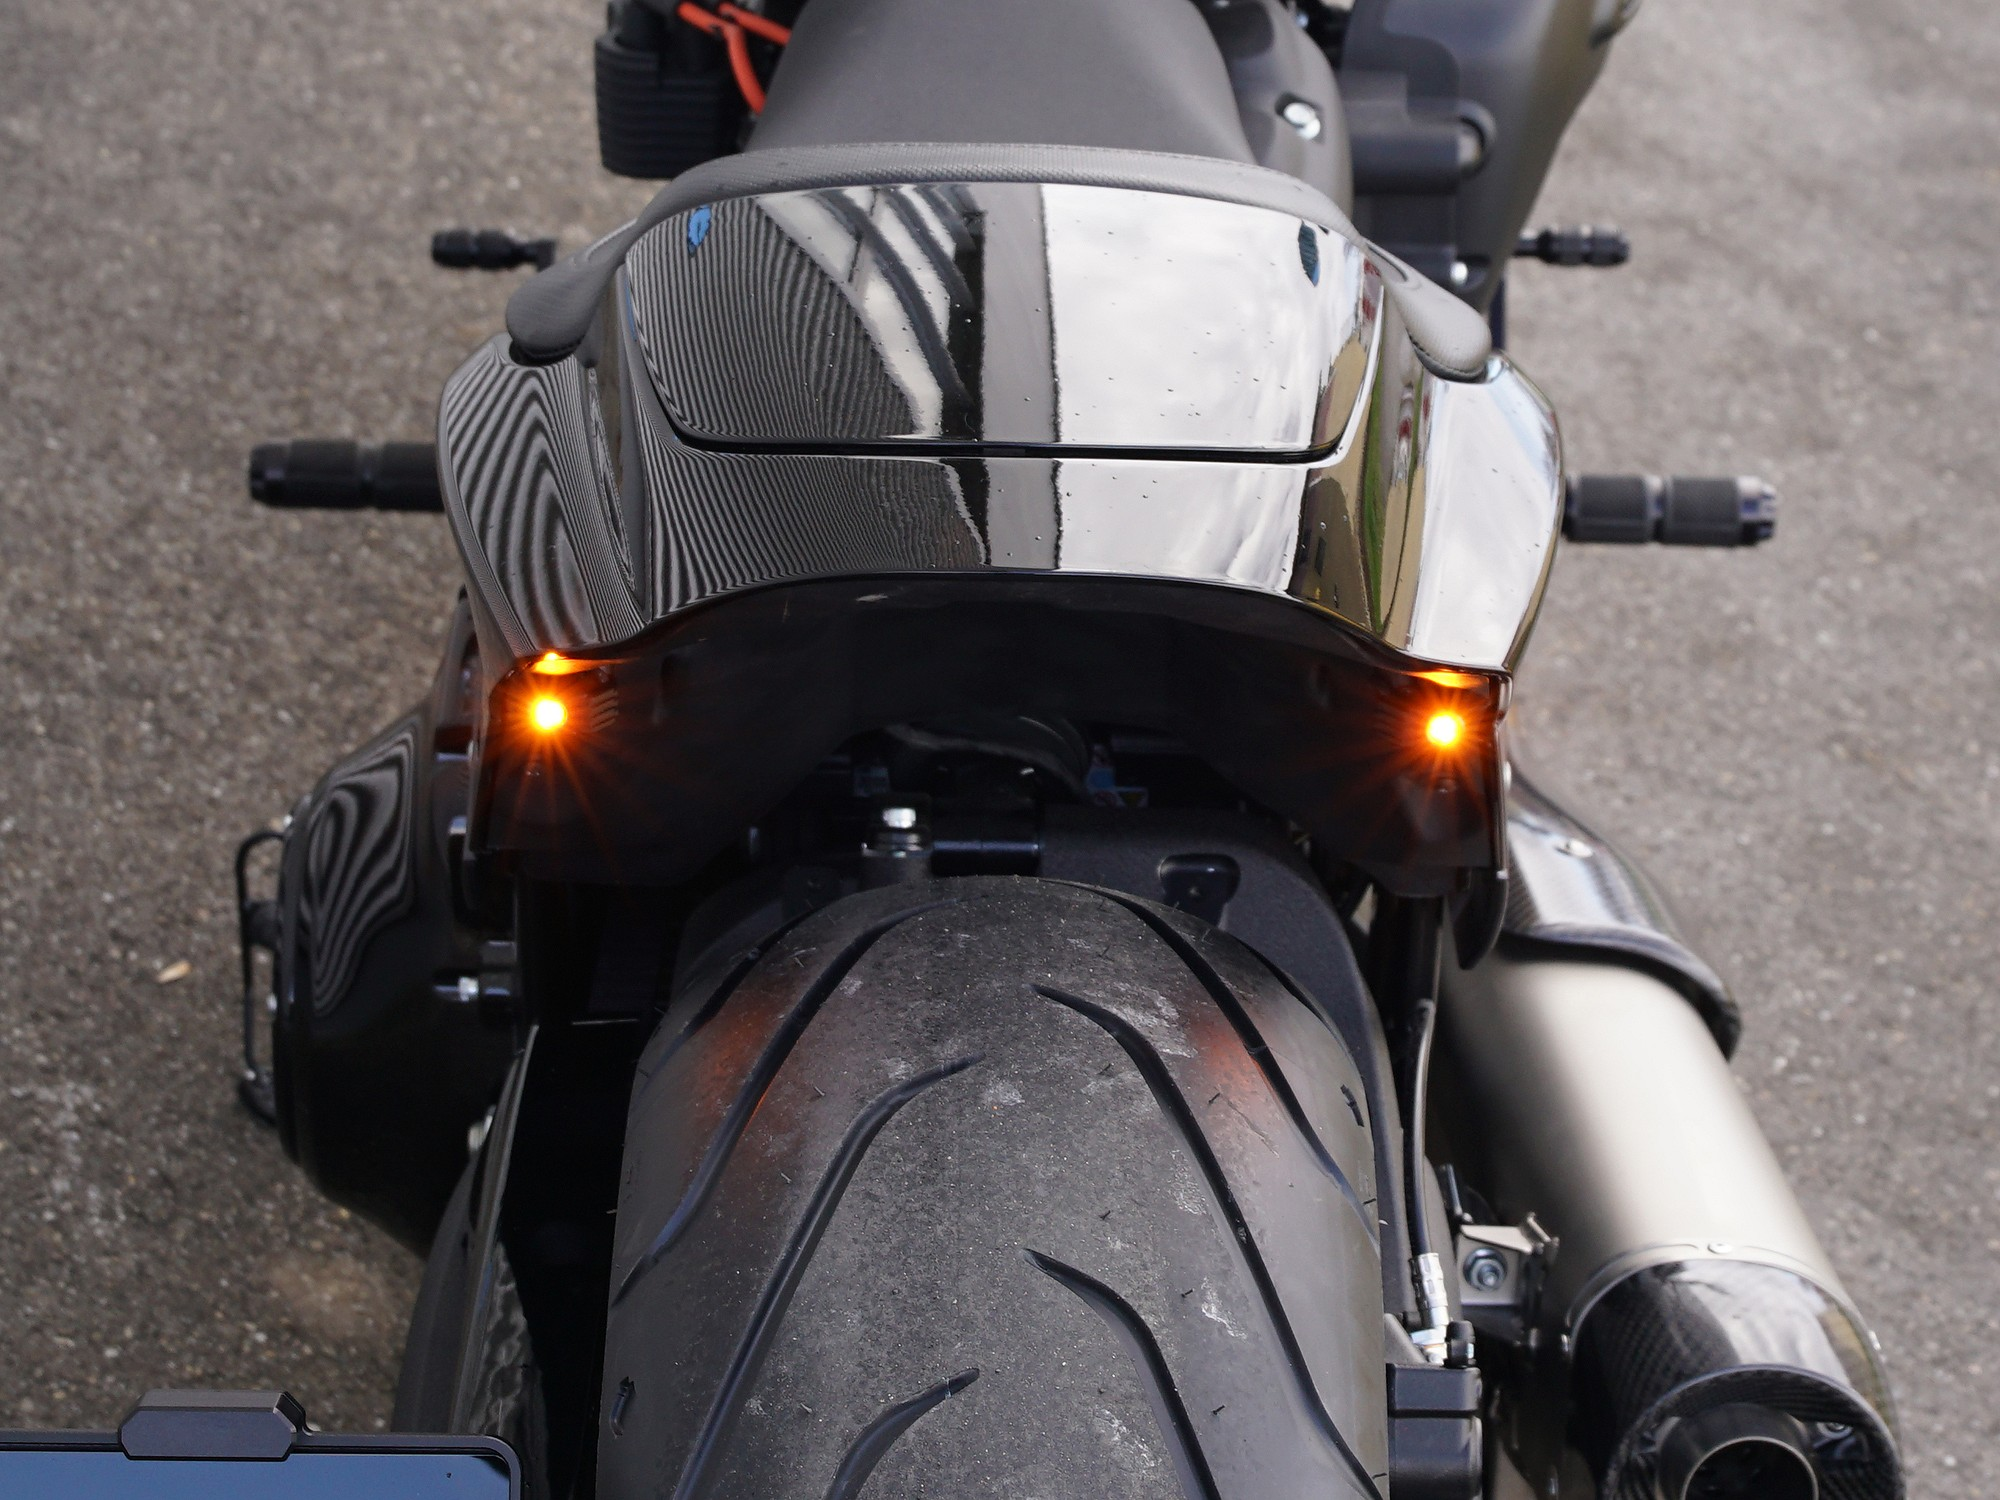 LED taillight/turn signal combination rear lower part HD FXDR